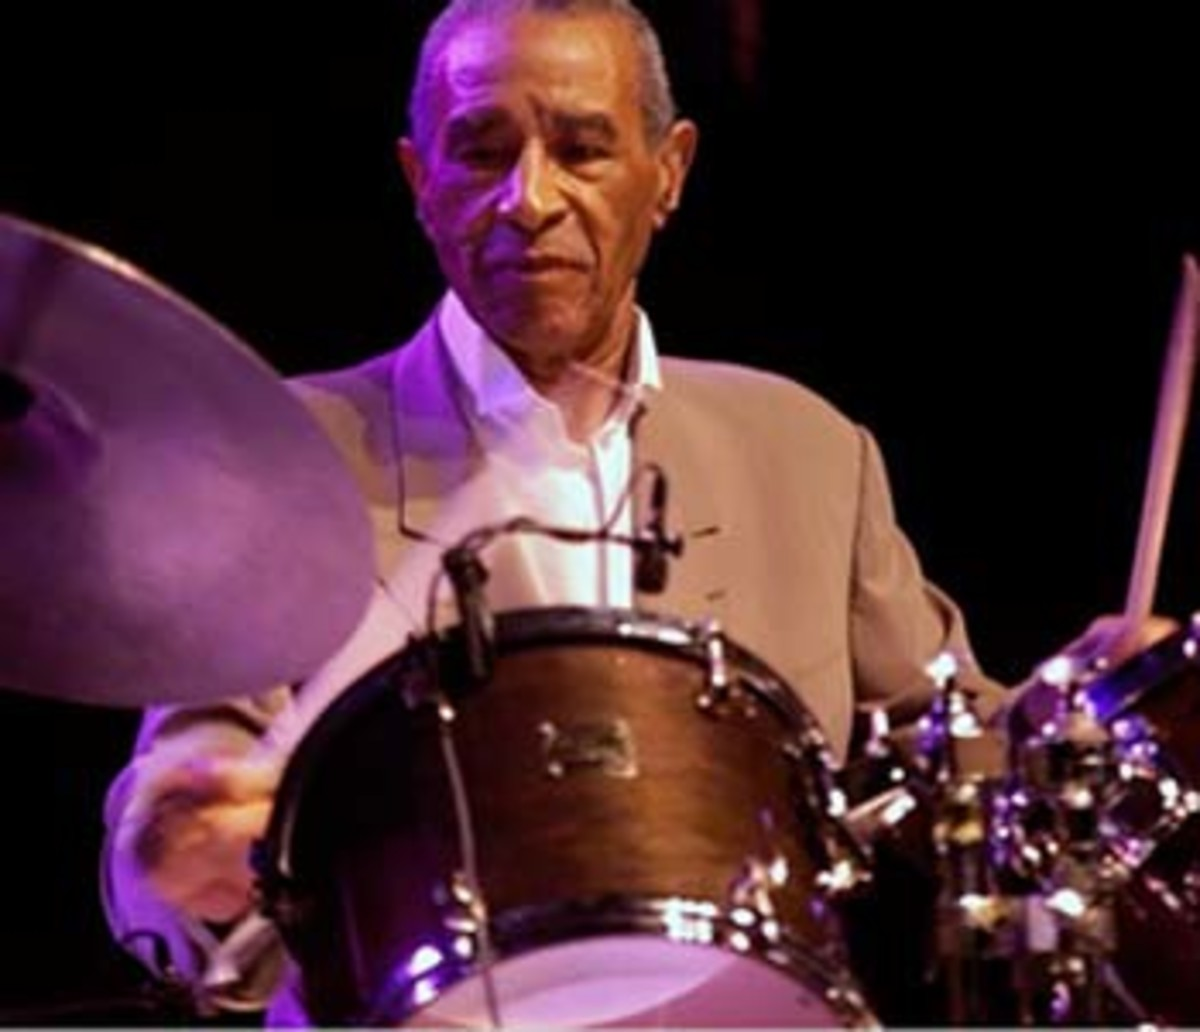 Max Roach innovated drum playing that instead of keeping time, he made music with the drum